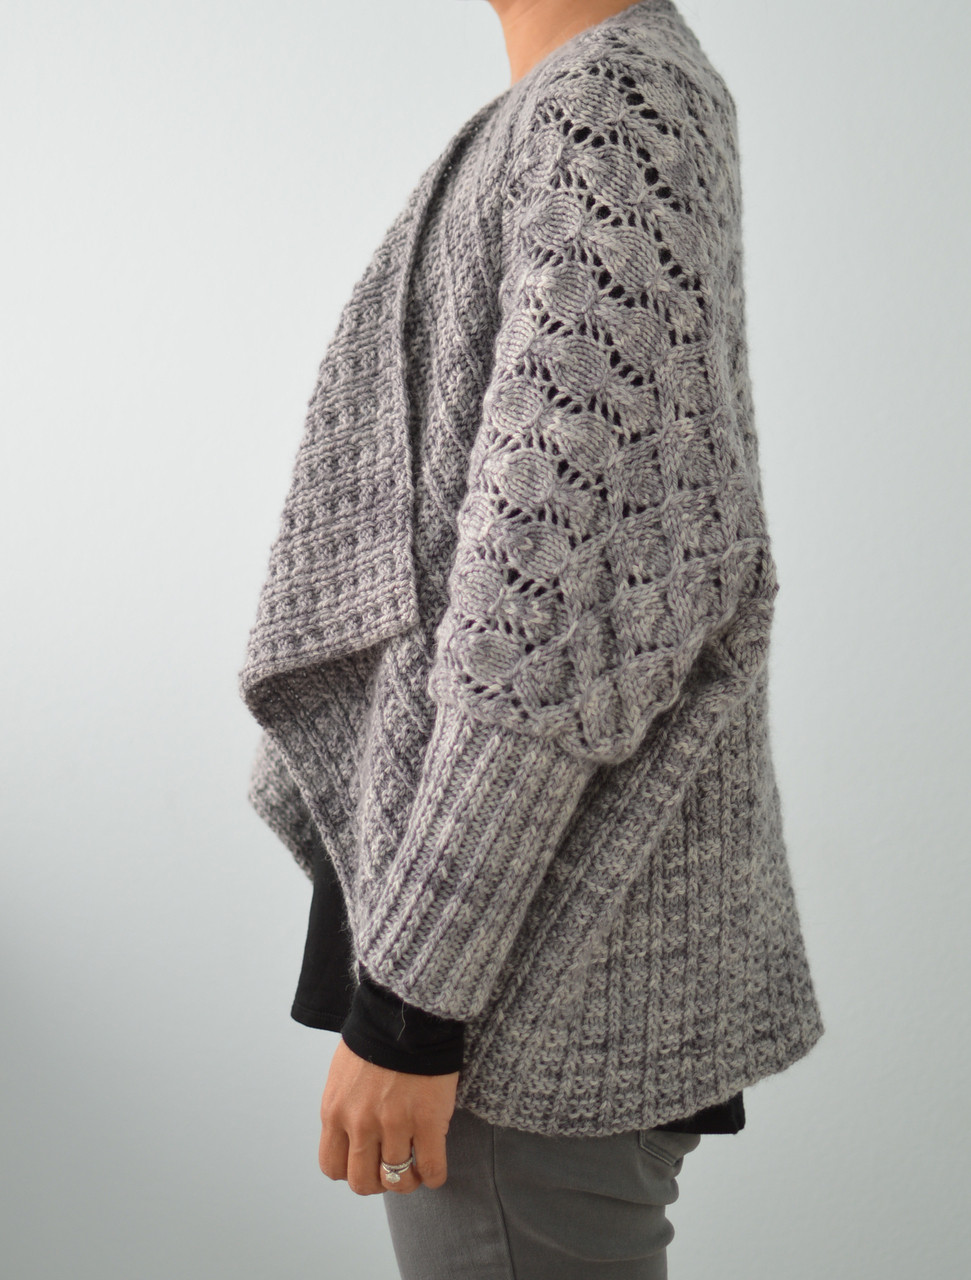 Knitting Pattern Wrap Cardigan : Eliza in a Cozy Cardigan Knit by Mom! - Knitting Patterns Blog from SweaterBa...